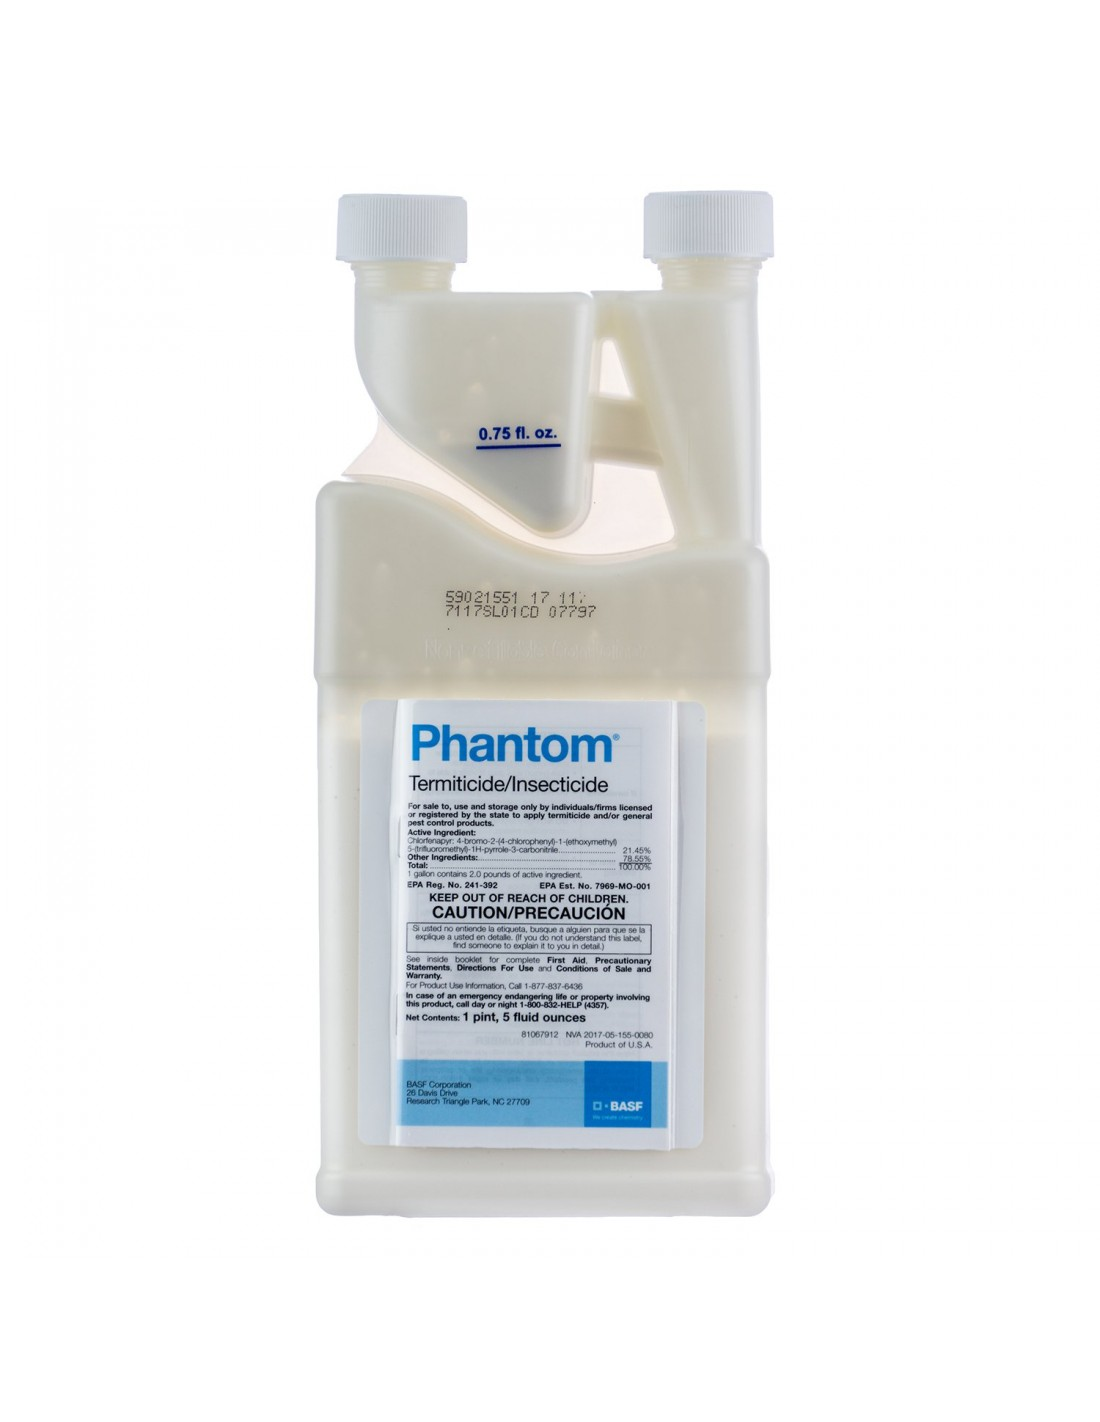 What is the best spray or treatment for cockroaches? Have seen where exterminators use Phantom?